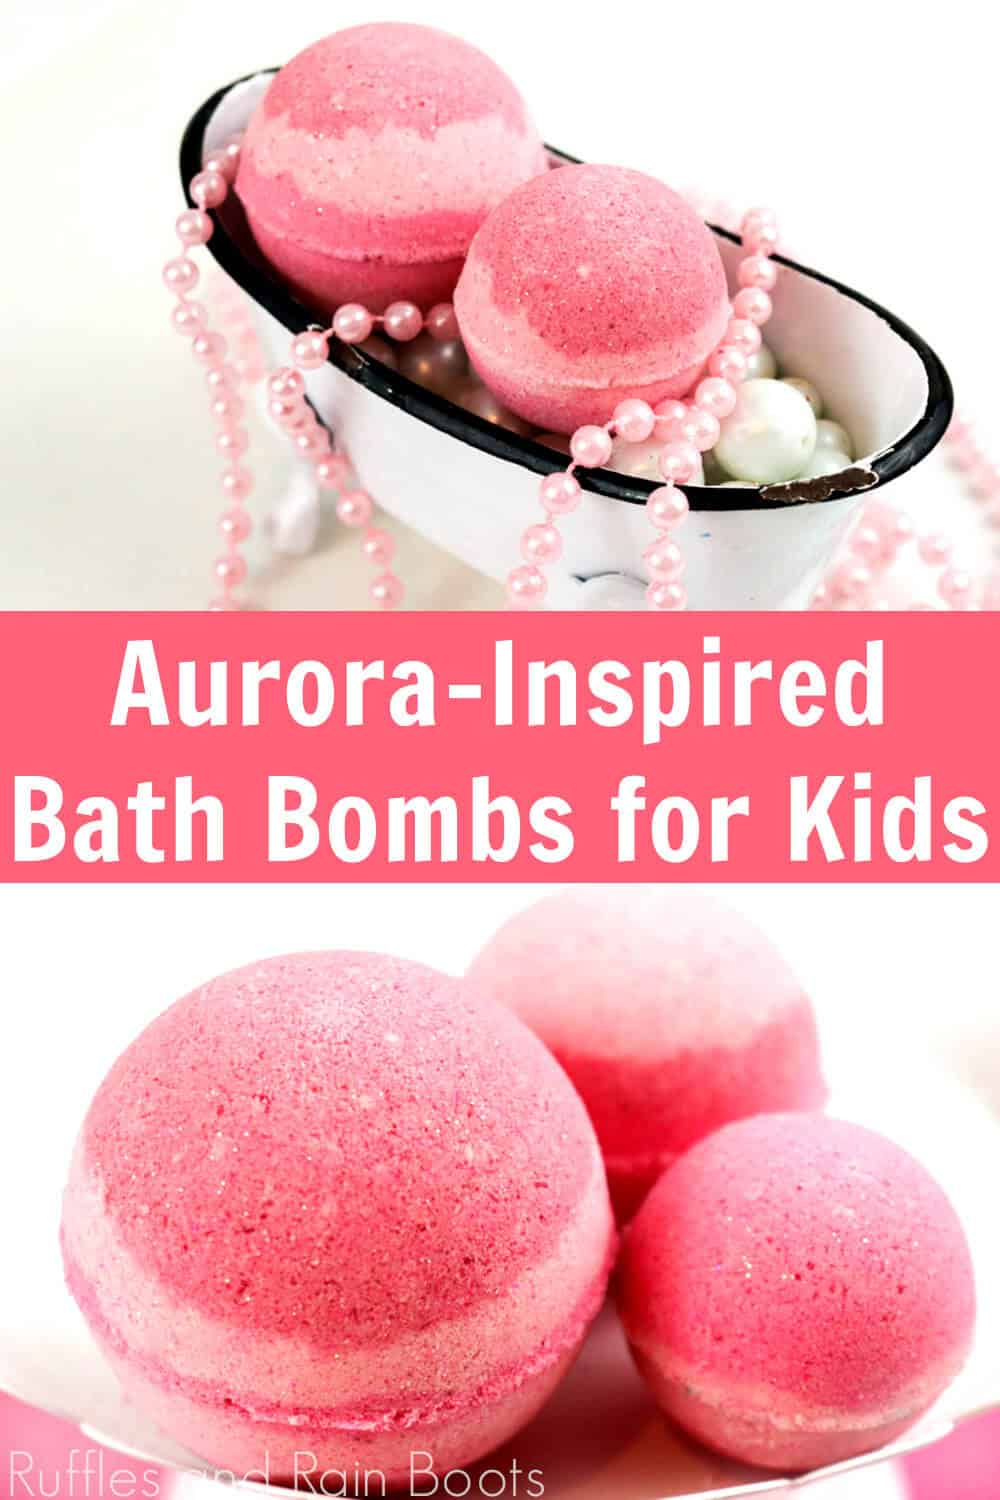 photo collage of sleeping beauty aurora bath bombs disney princess with text which reads aurora-inspired baht bombs for kids